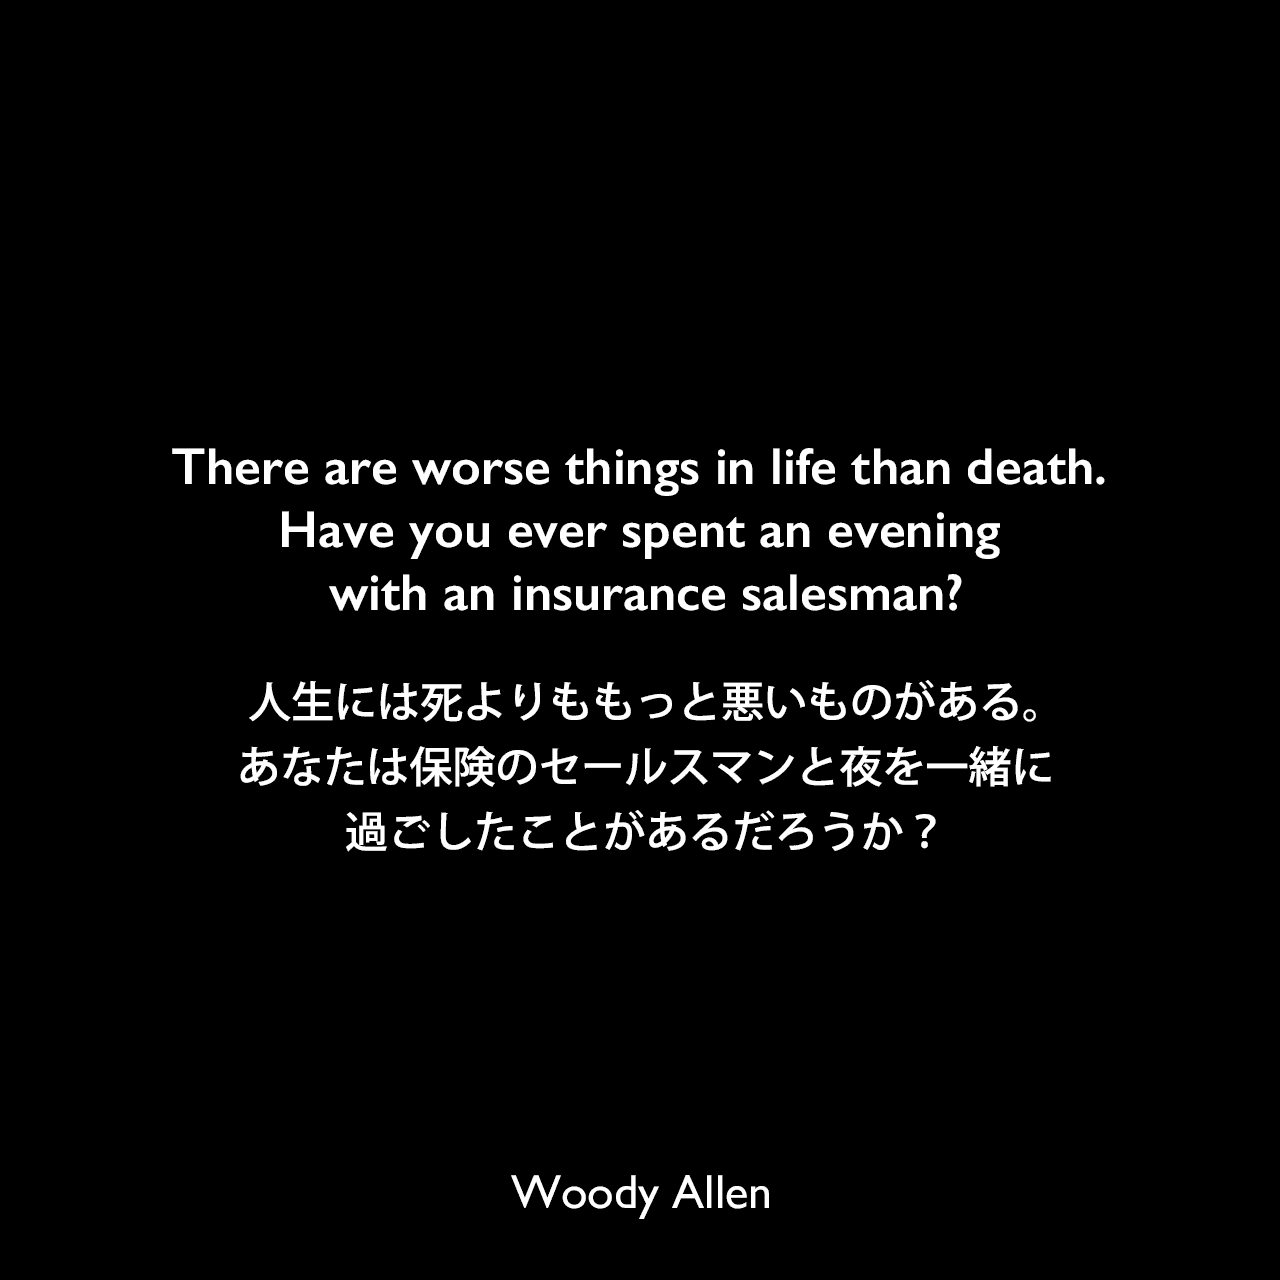 There are worse things in life than death. Have you ever spent an evening with an insurance salesman?人生には死よりももっと悪いものがある。あなたは保険のセールスマンと夜を一緒に過ごしたことがあるだろうか?Woody Allen